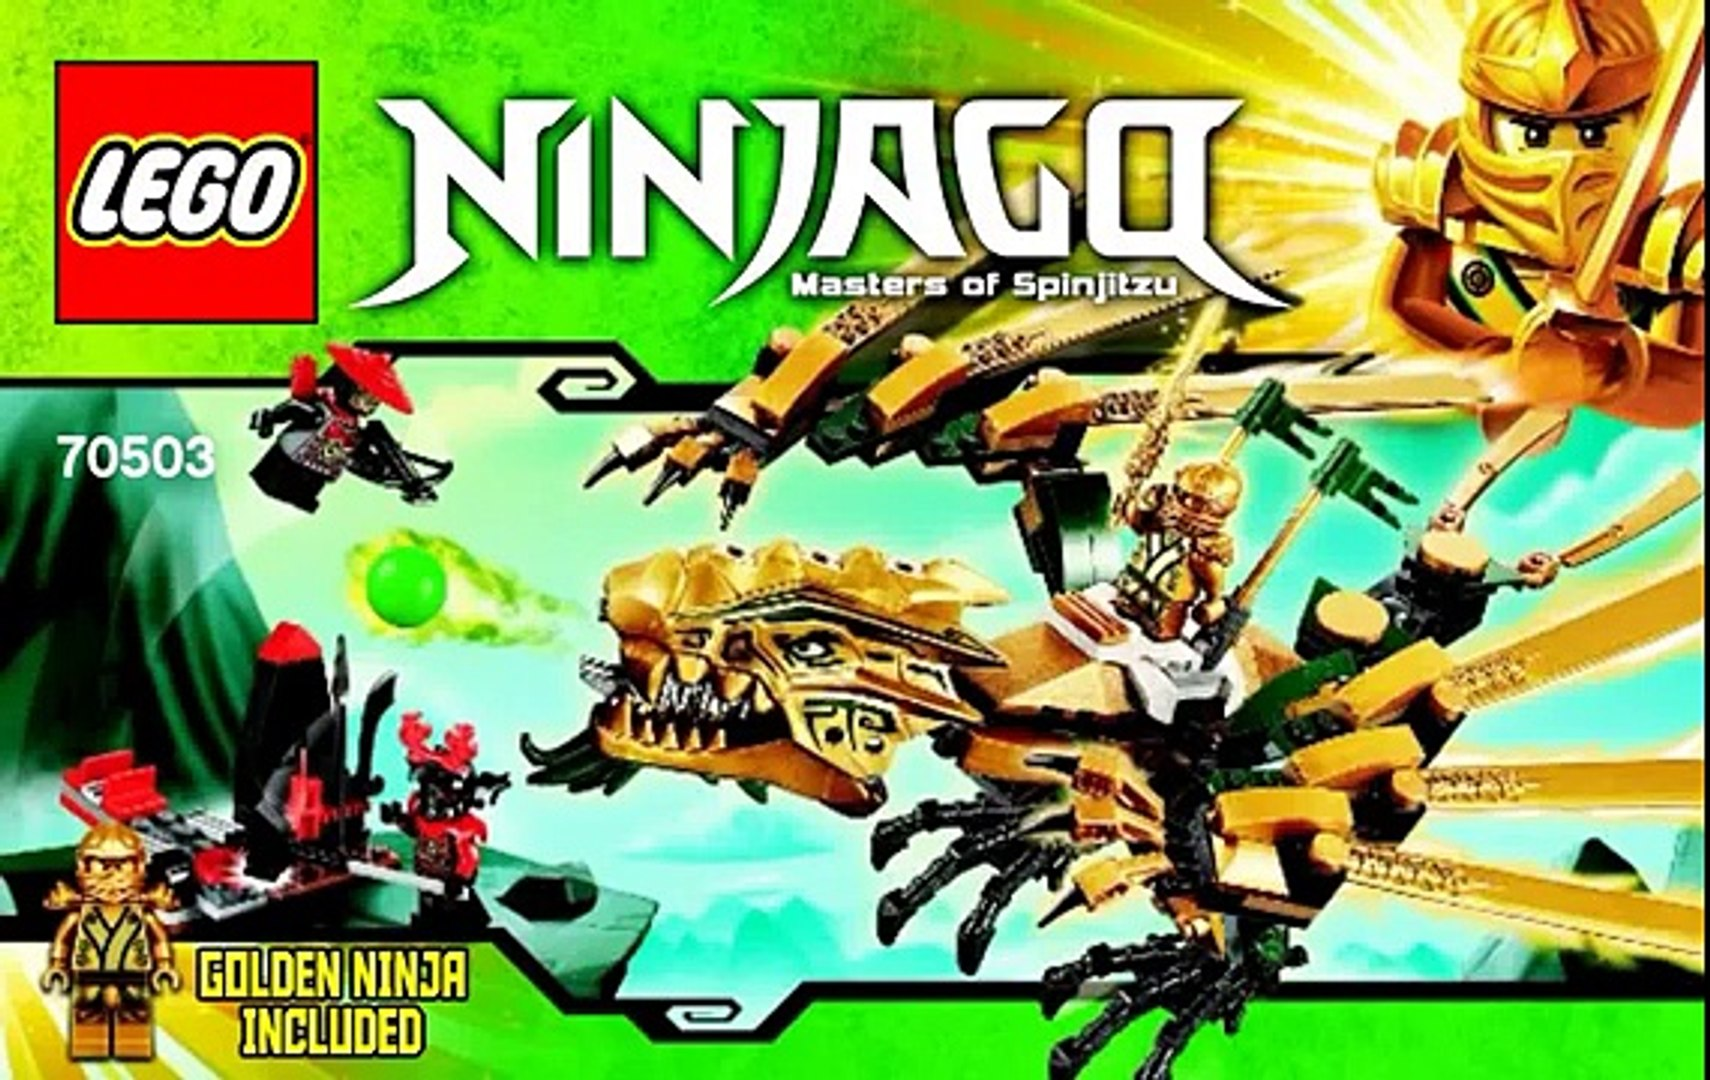 The Golden Dragon Lego Ninjago Set 70503 Time Lapse Build Unboxing Review Video Dailymotion